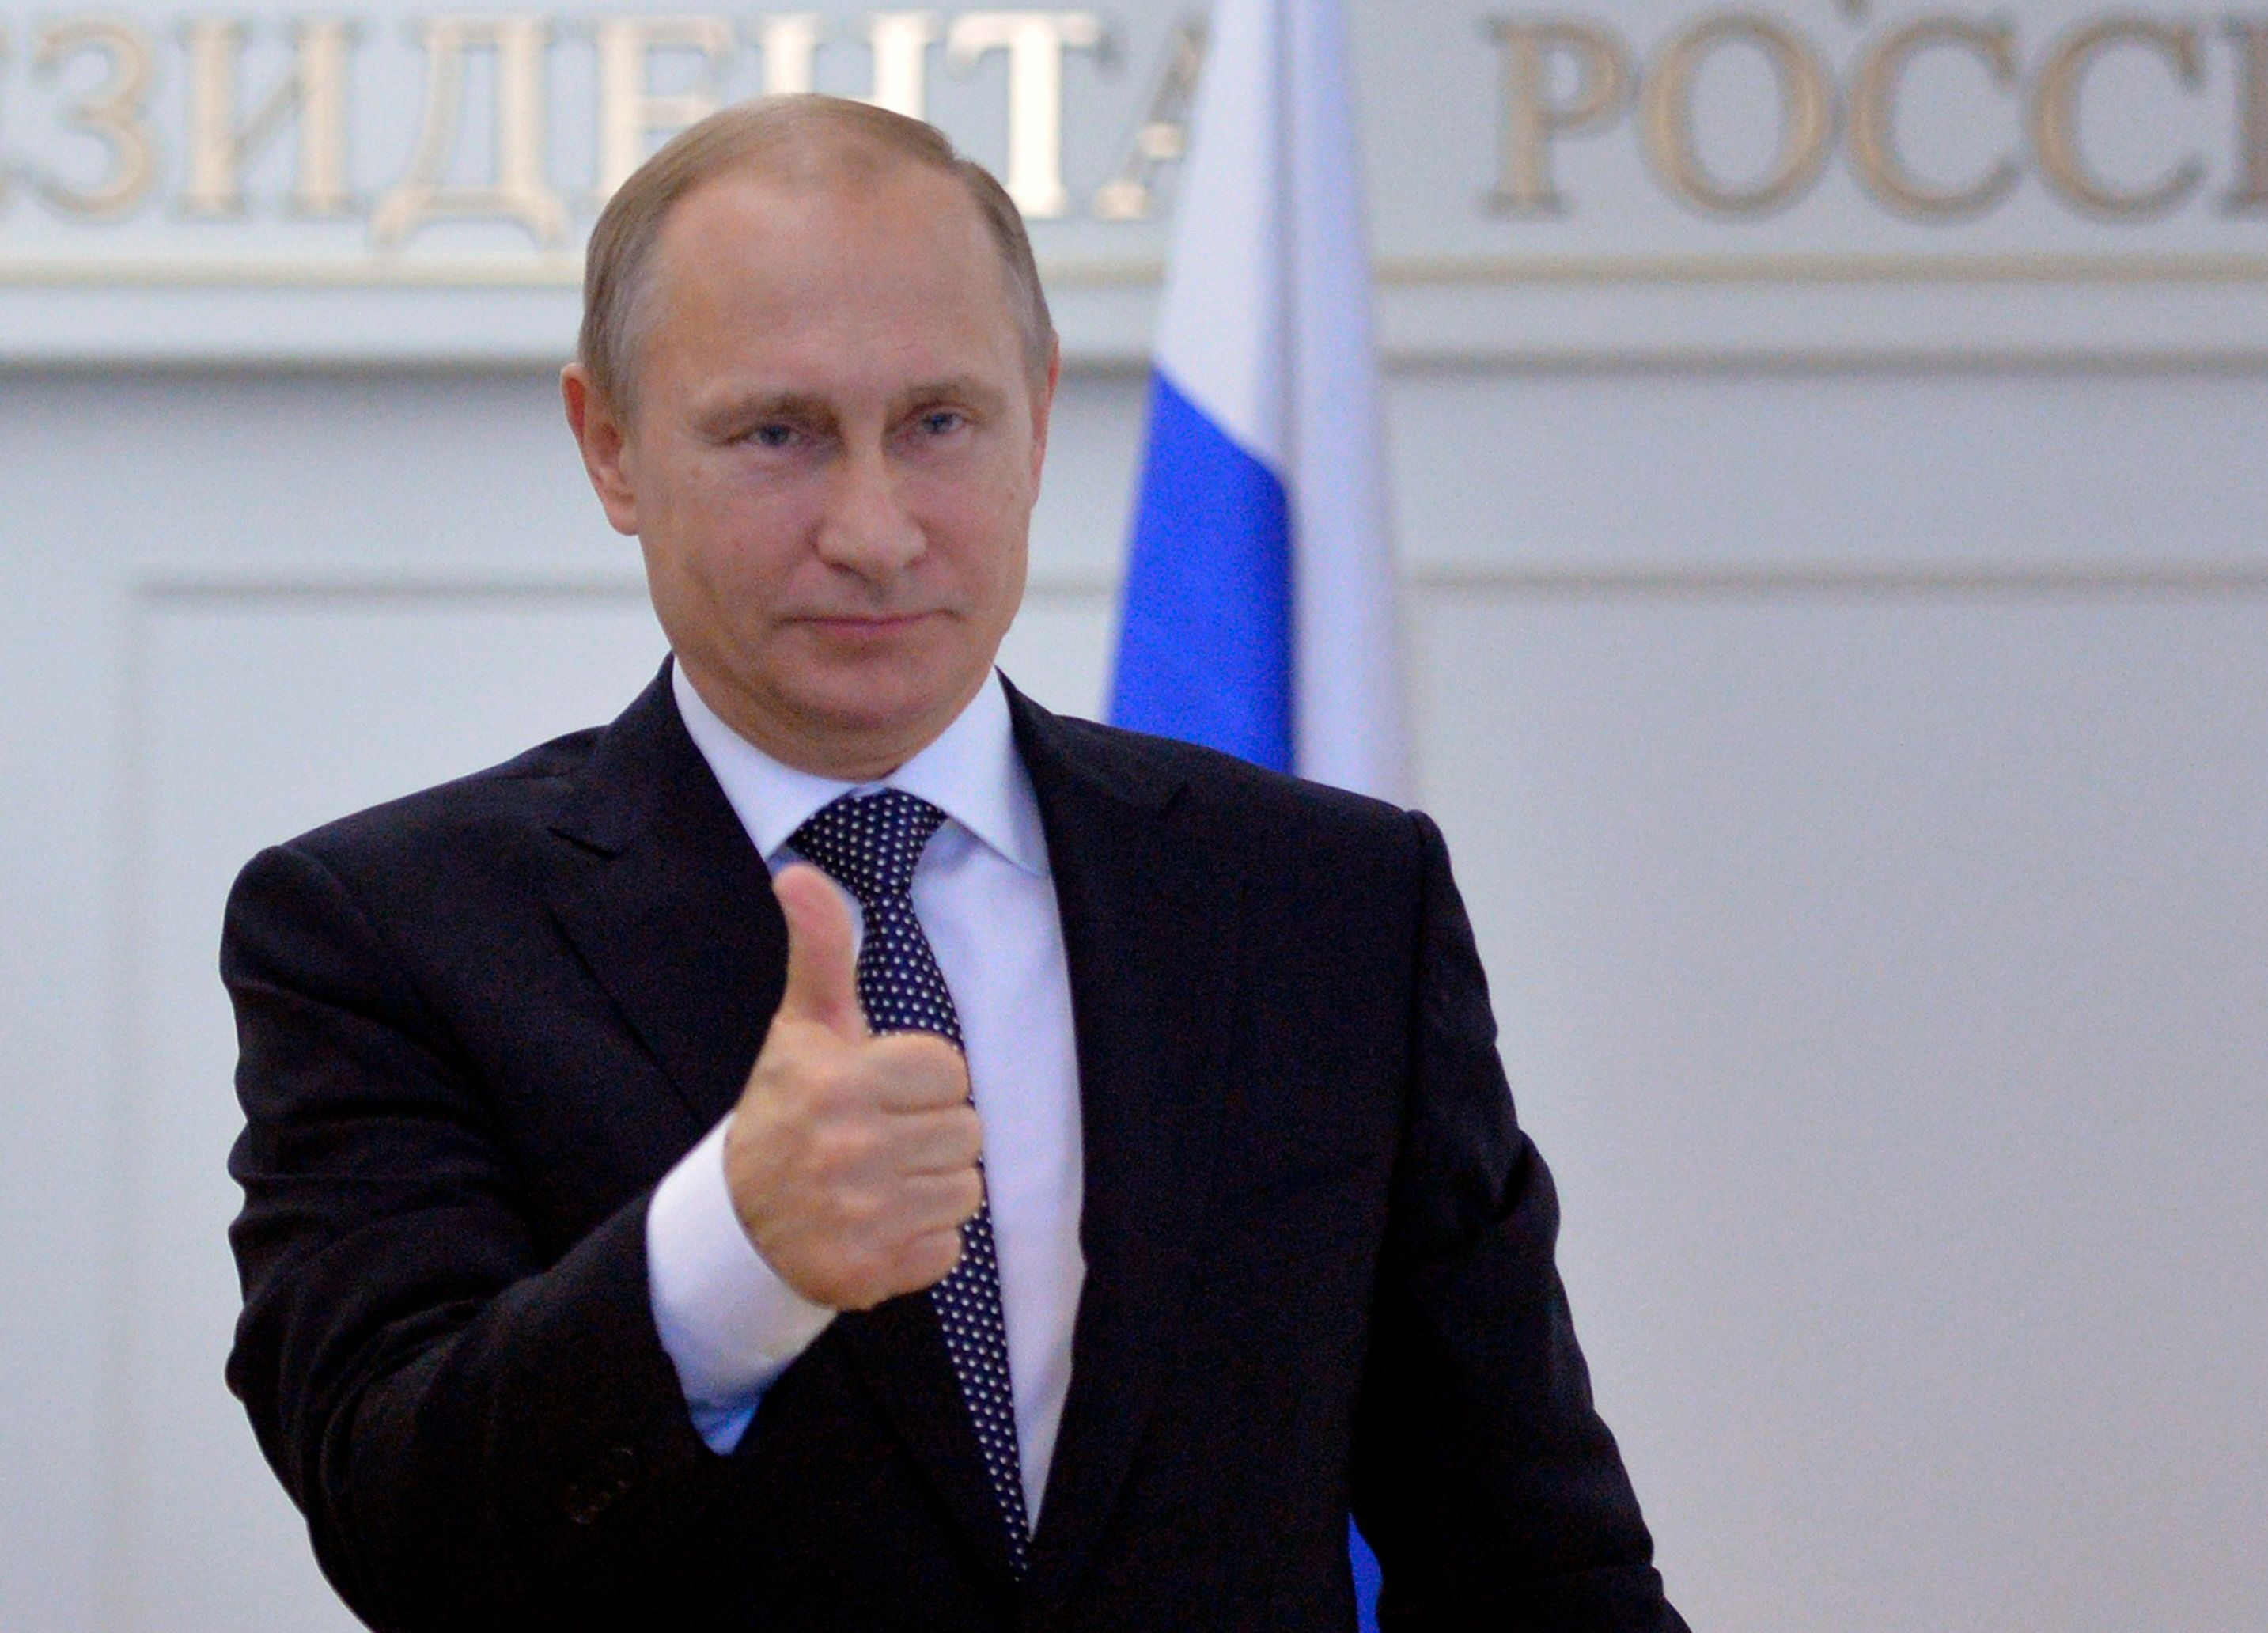 Russian President Vladimir Putin gives thumbs up during a live video link with Plesetsk Cosmodrome, as he watches a launch of Angara-A5 rocket booster in Moscow, Russia, on Tuesday, Dec. 23, 2014. (AP Photo/RIA Novosti, Alexei Druzhinin, Presidential Press Service)